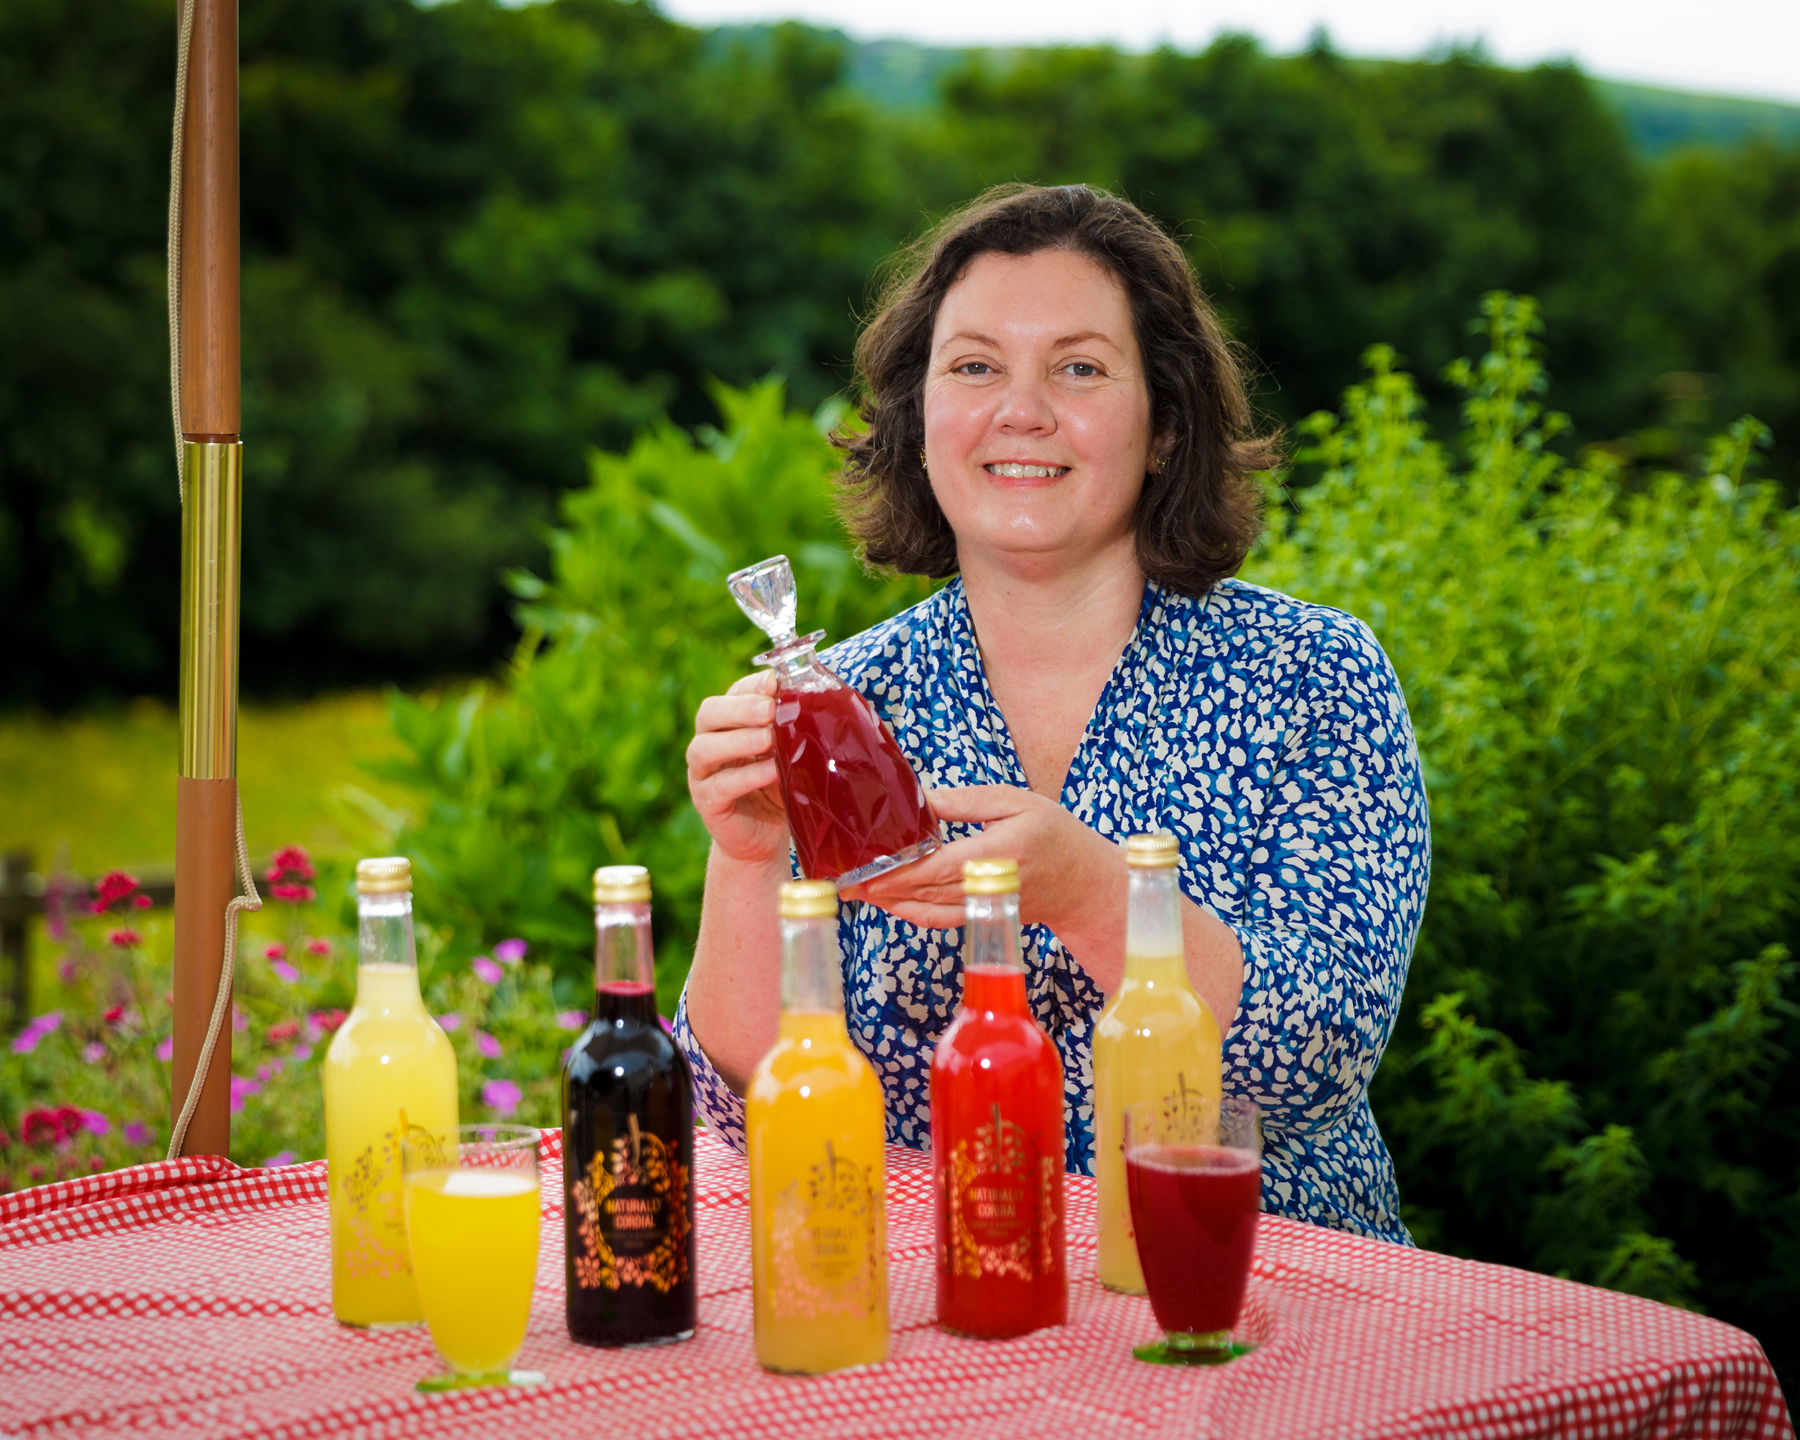 Wexford mum's cordial success to be showcased at Bite Food Fest